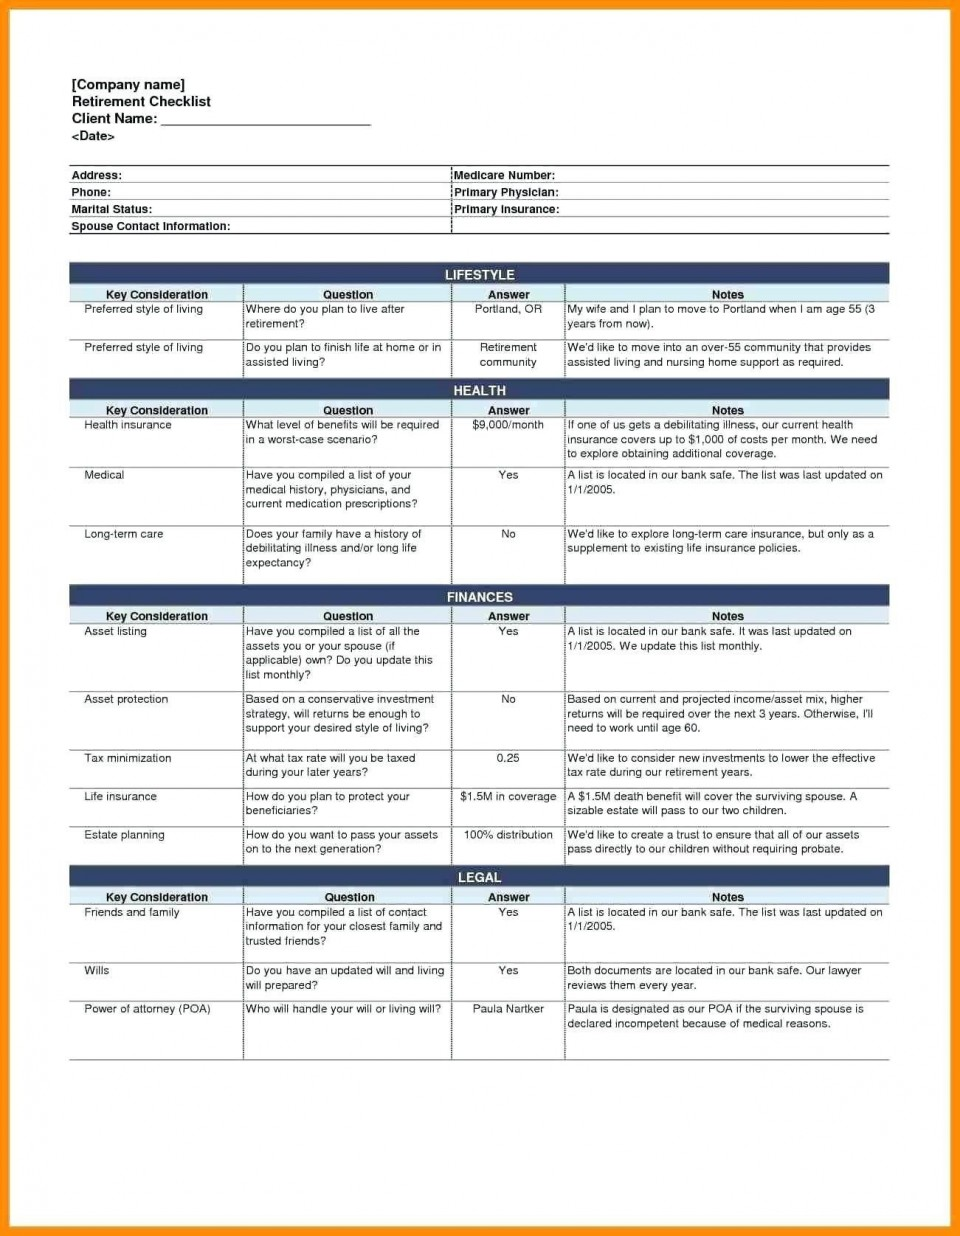 003 Amazing Free Event Planning Template Checklist Image  Planner Party960